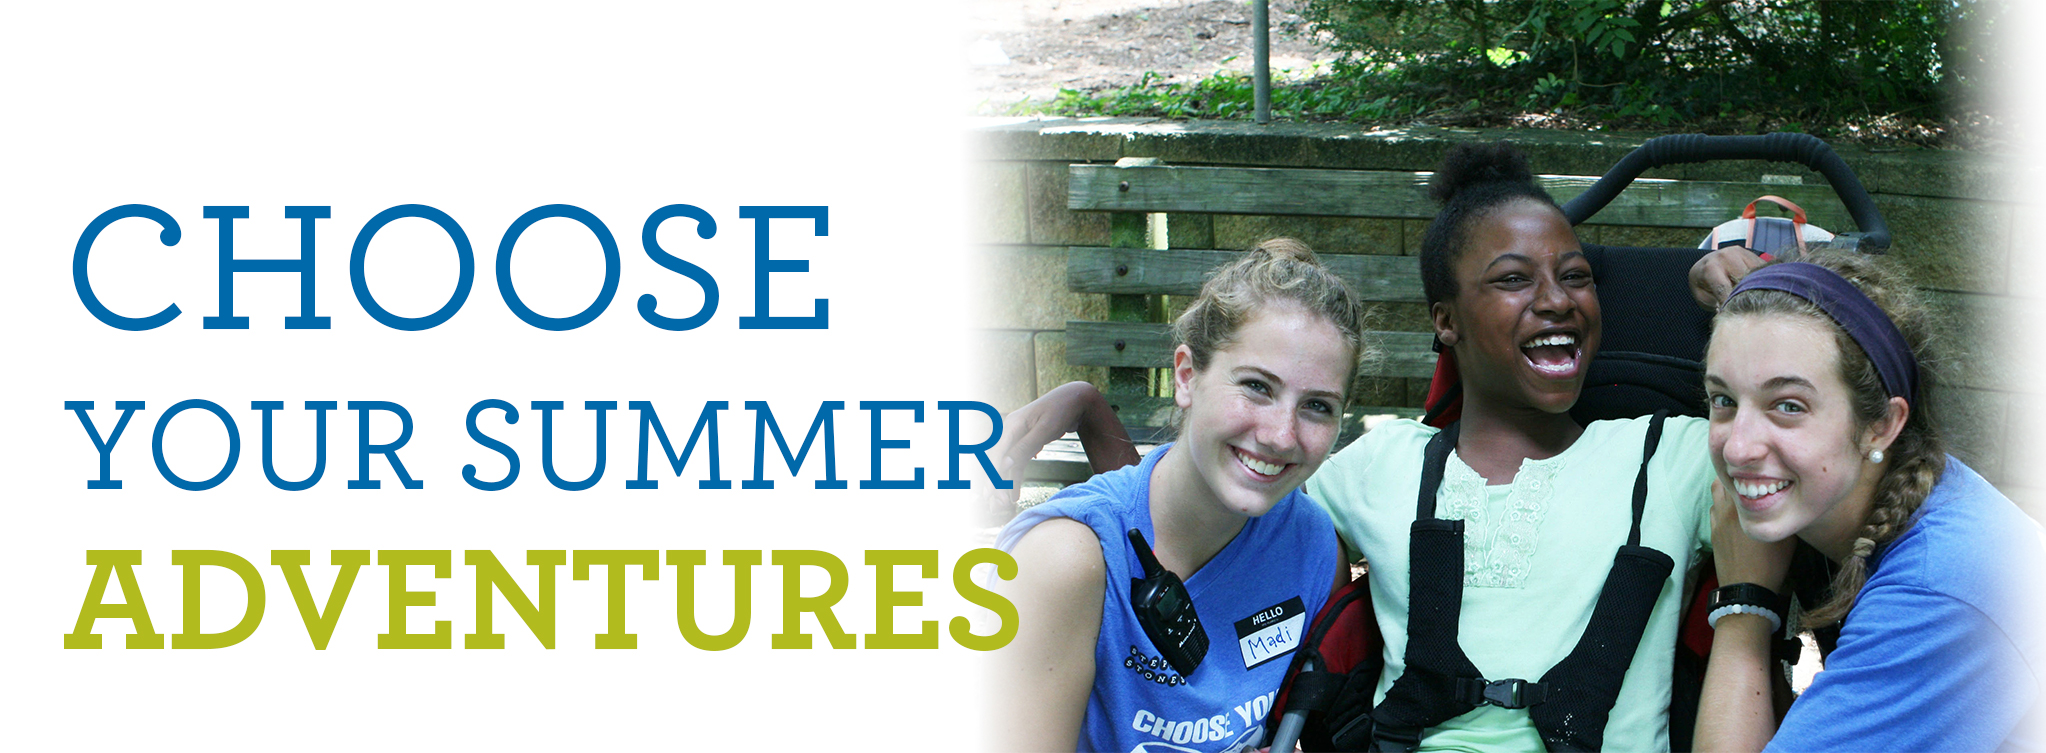 Stepping Stones Summer Camp programs for children and adults with disabilities - Greater Cincinnati